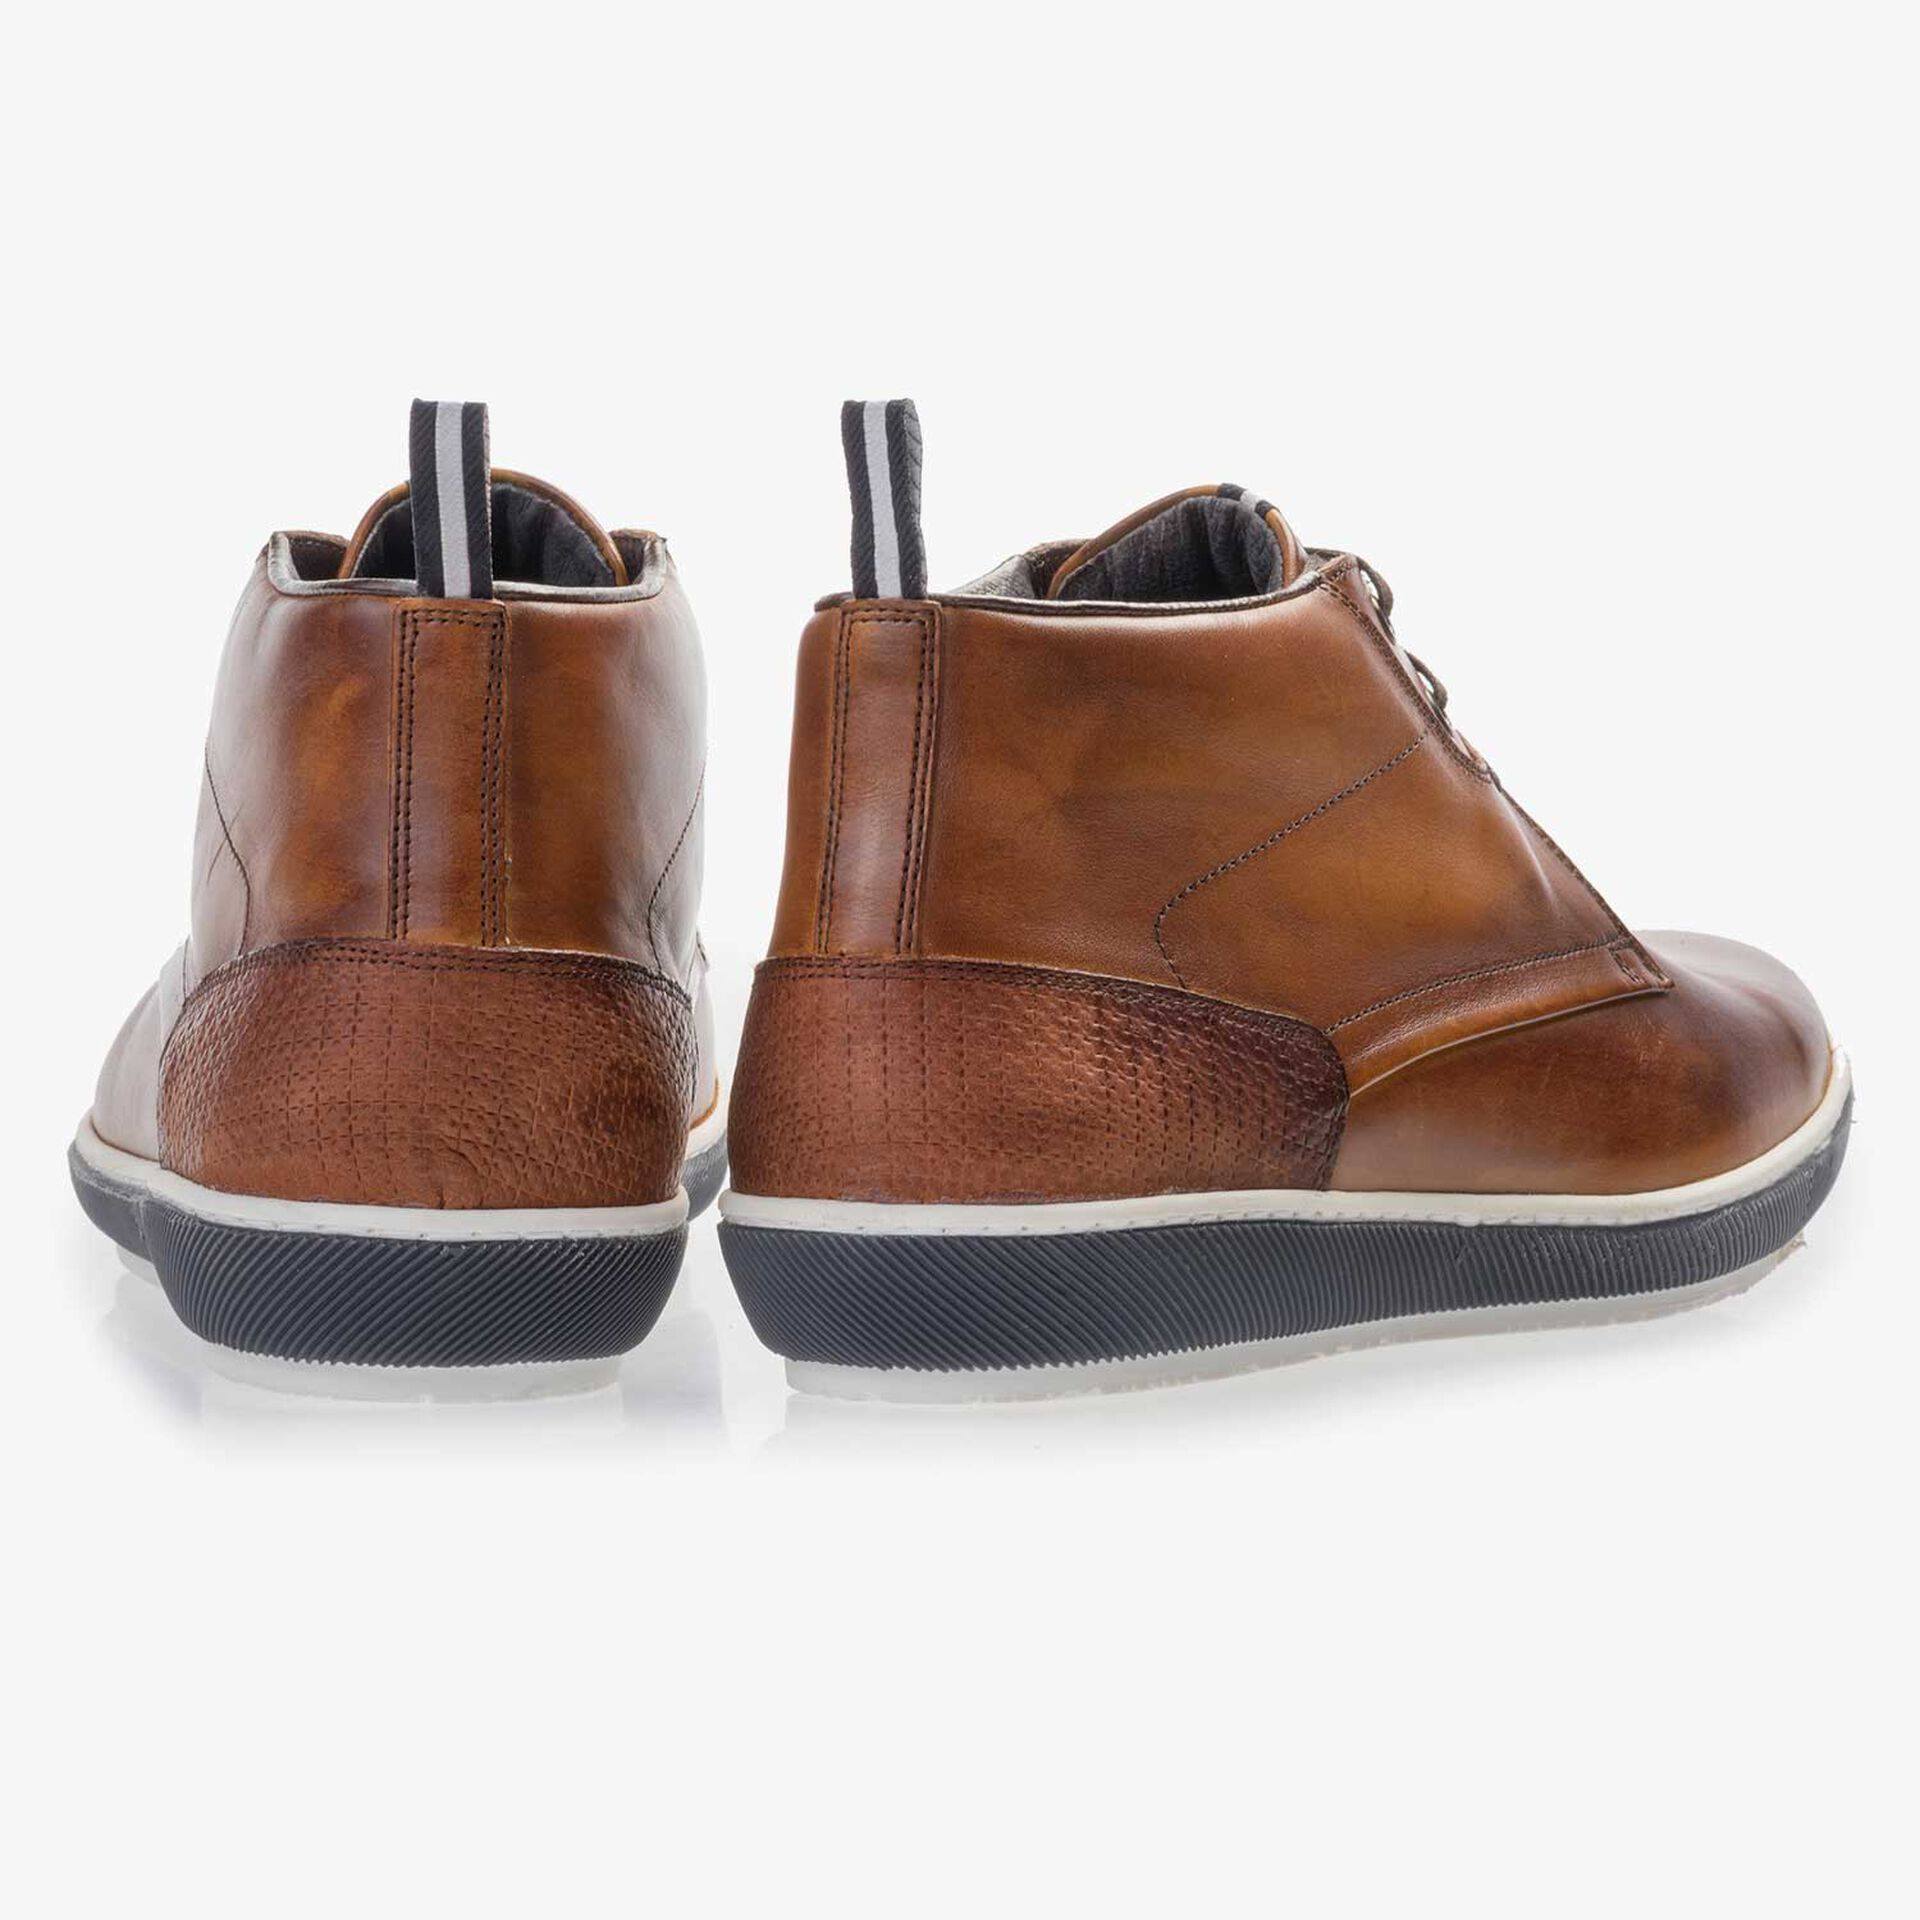 Cognac-coloured calf's leather lace boot